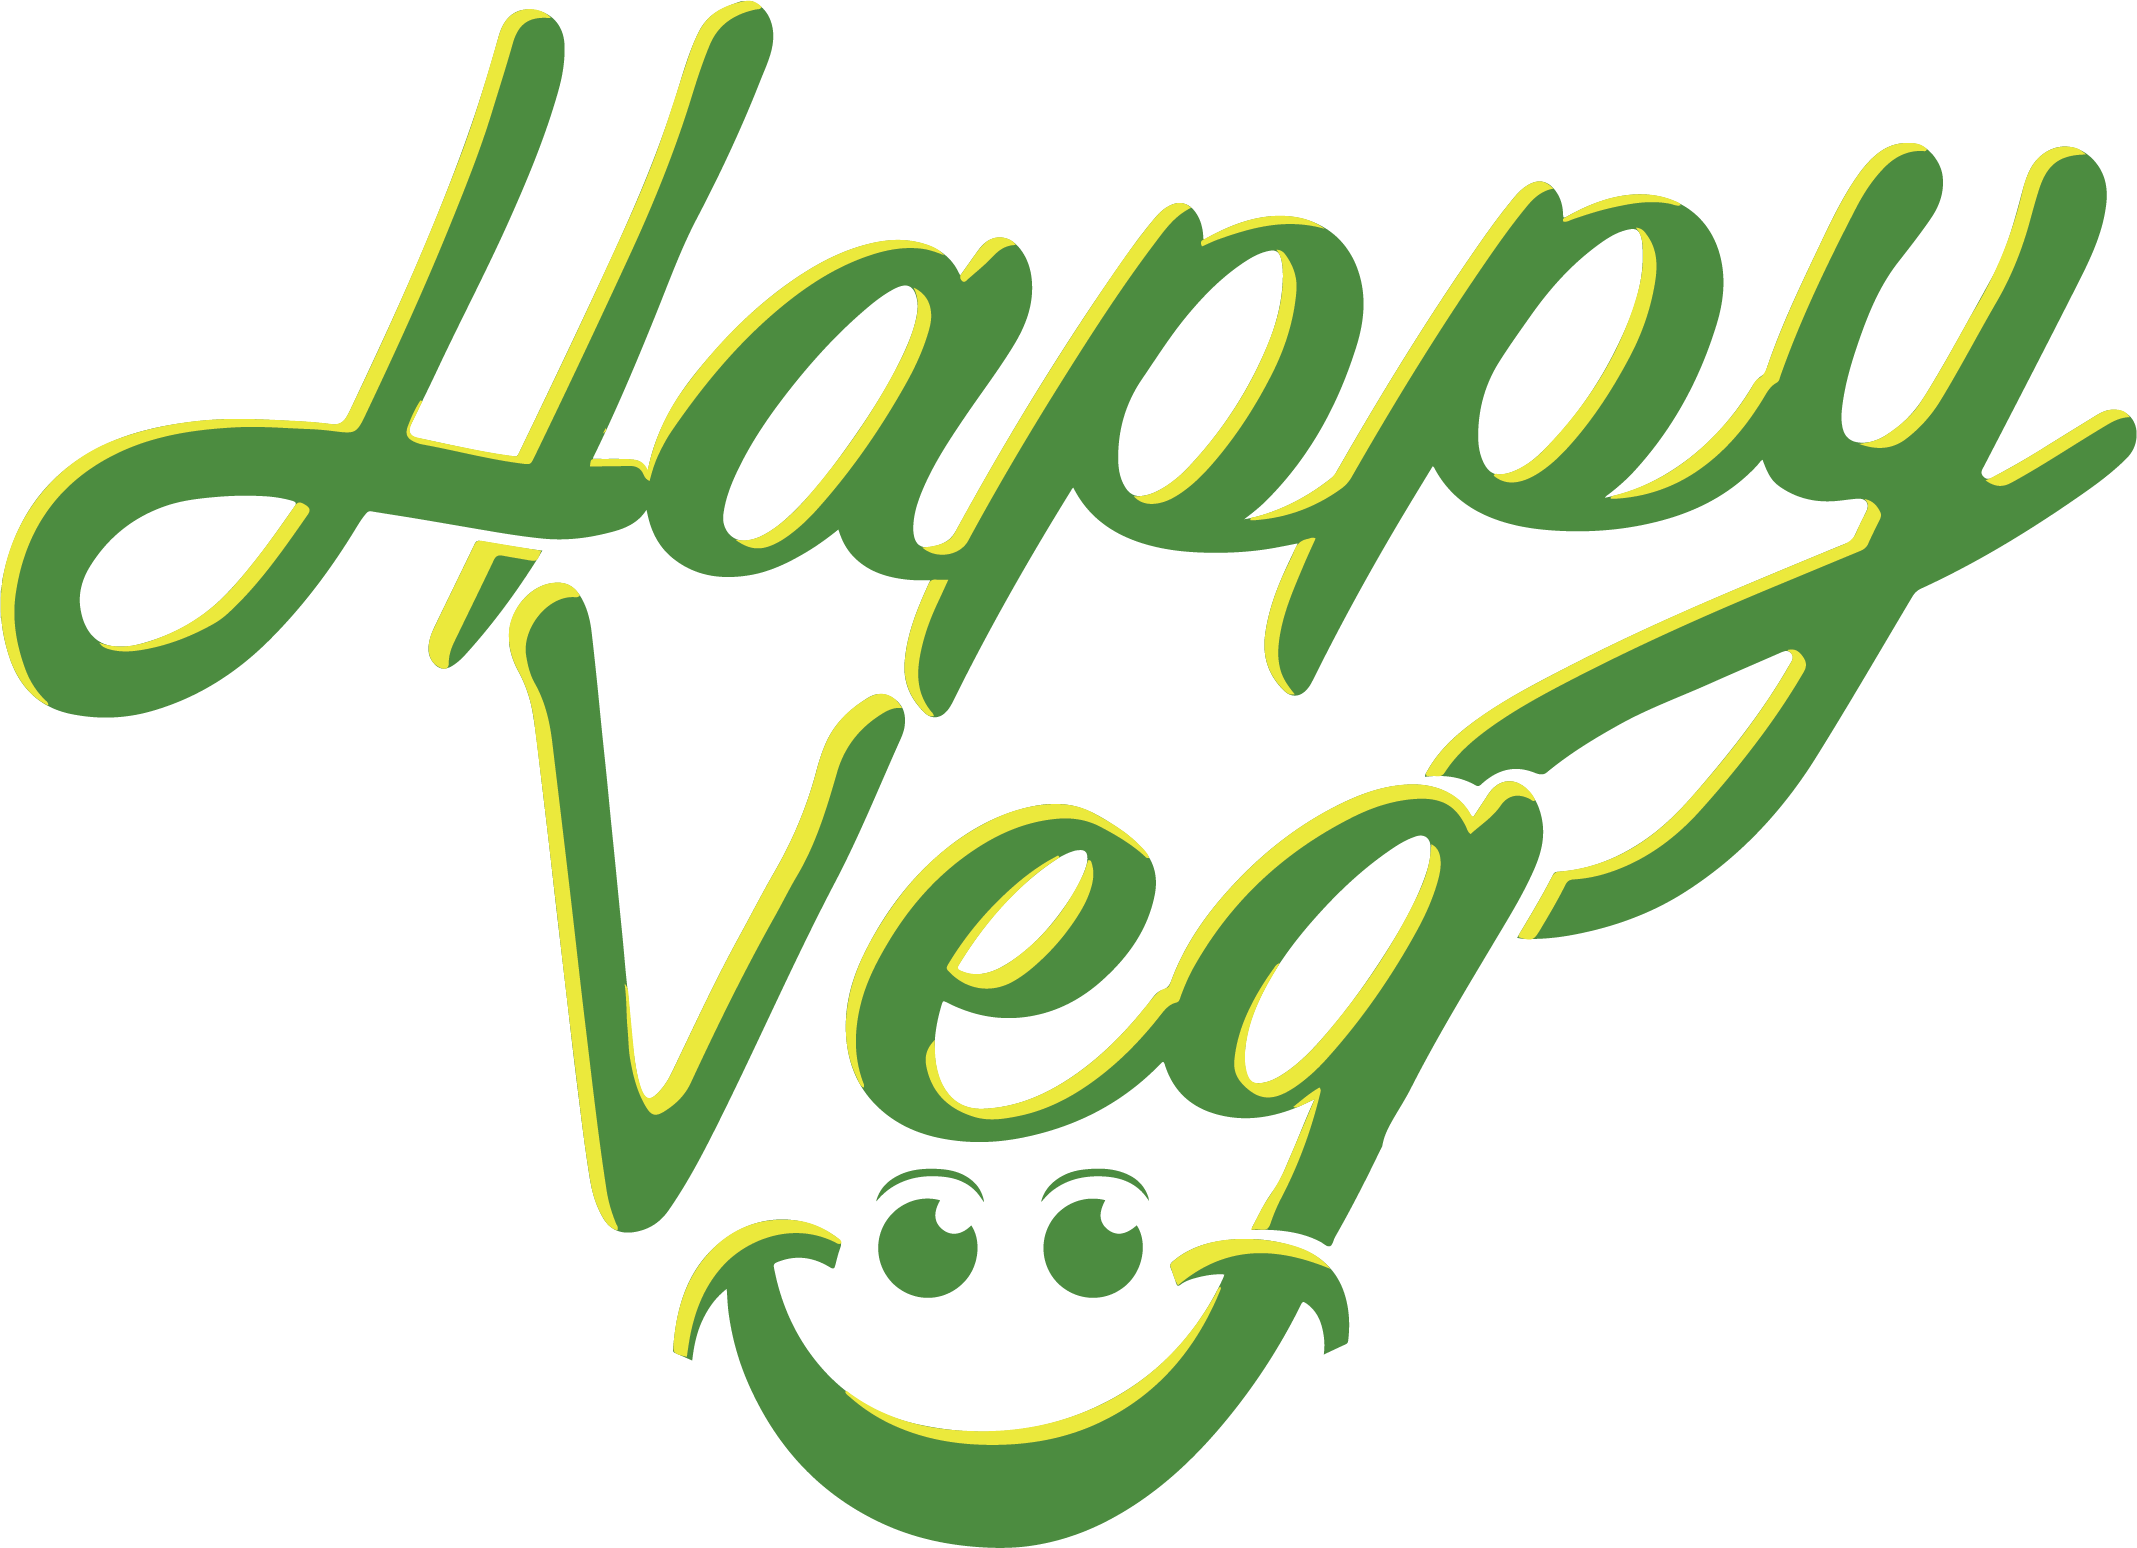 2020 Happy Veg